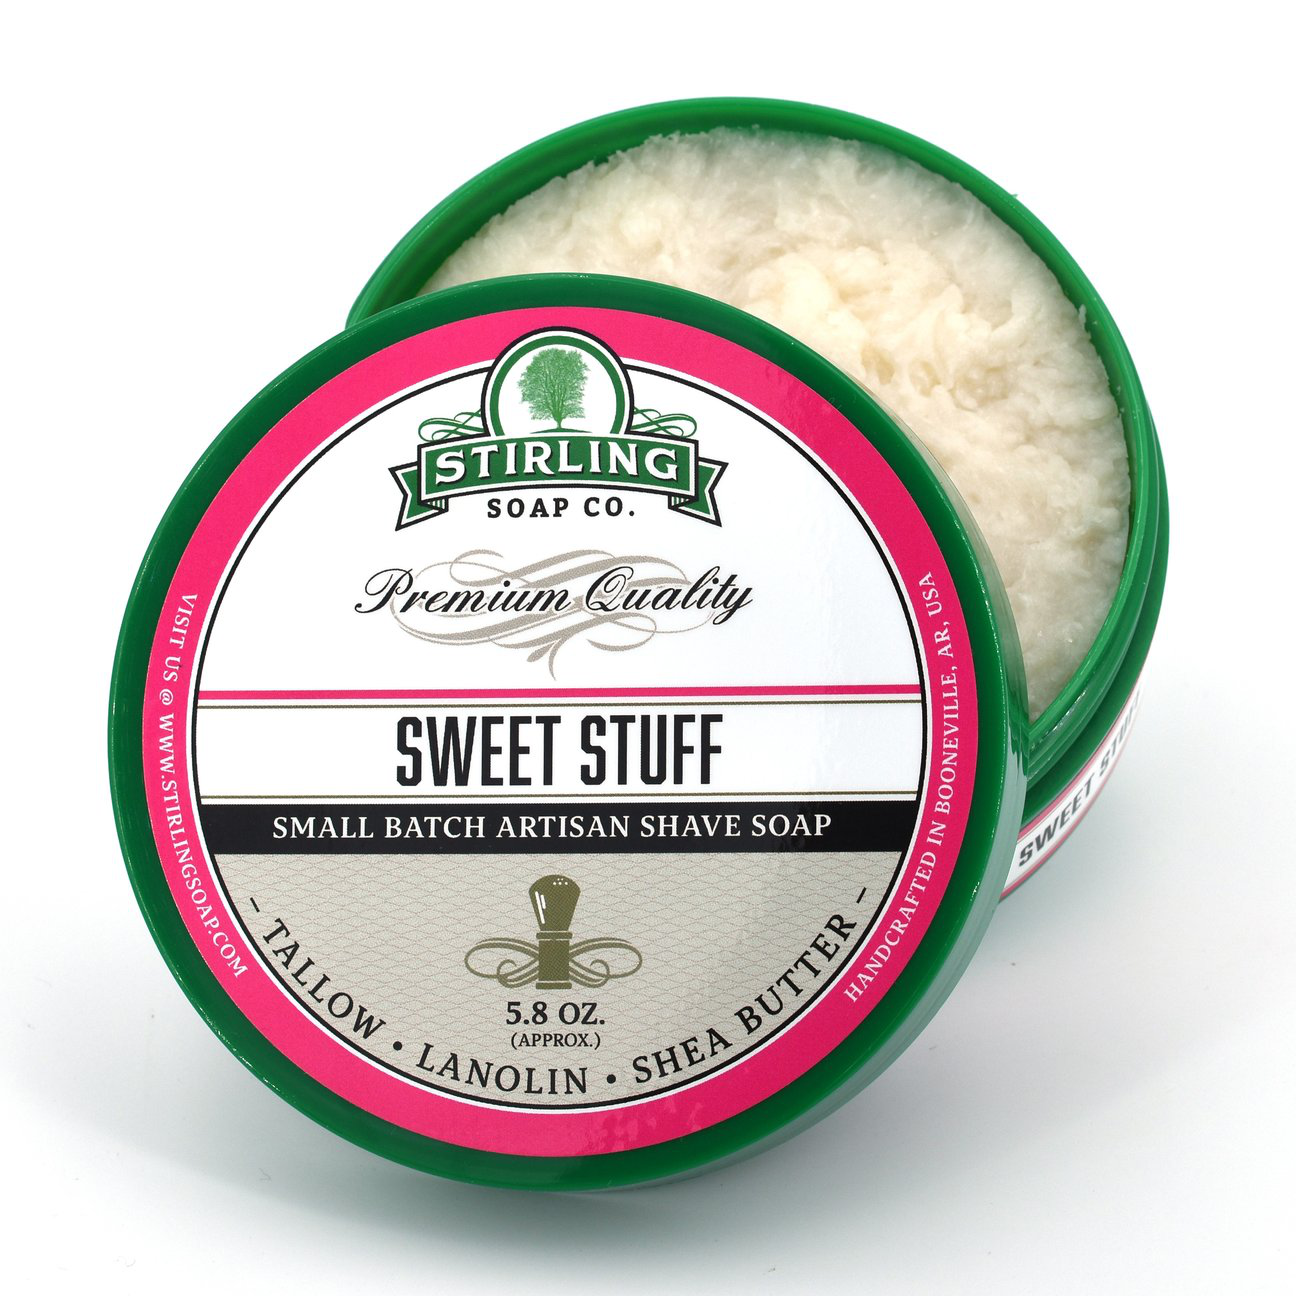 Stirling Soap Co. - Sweet Stuff - Soap image